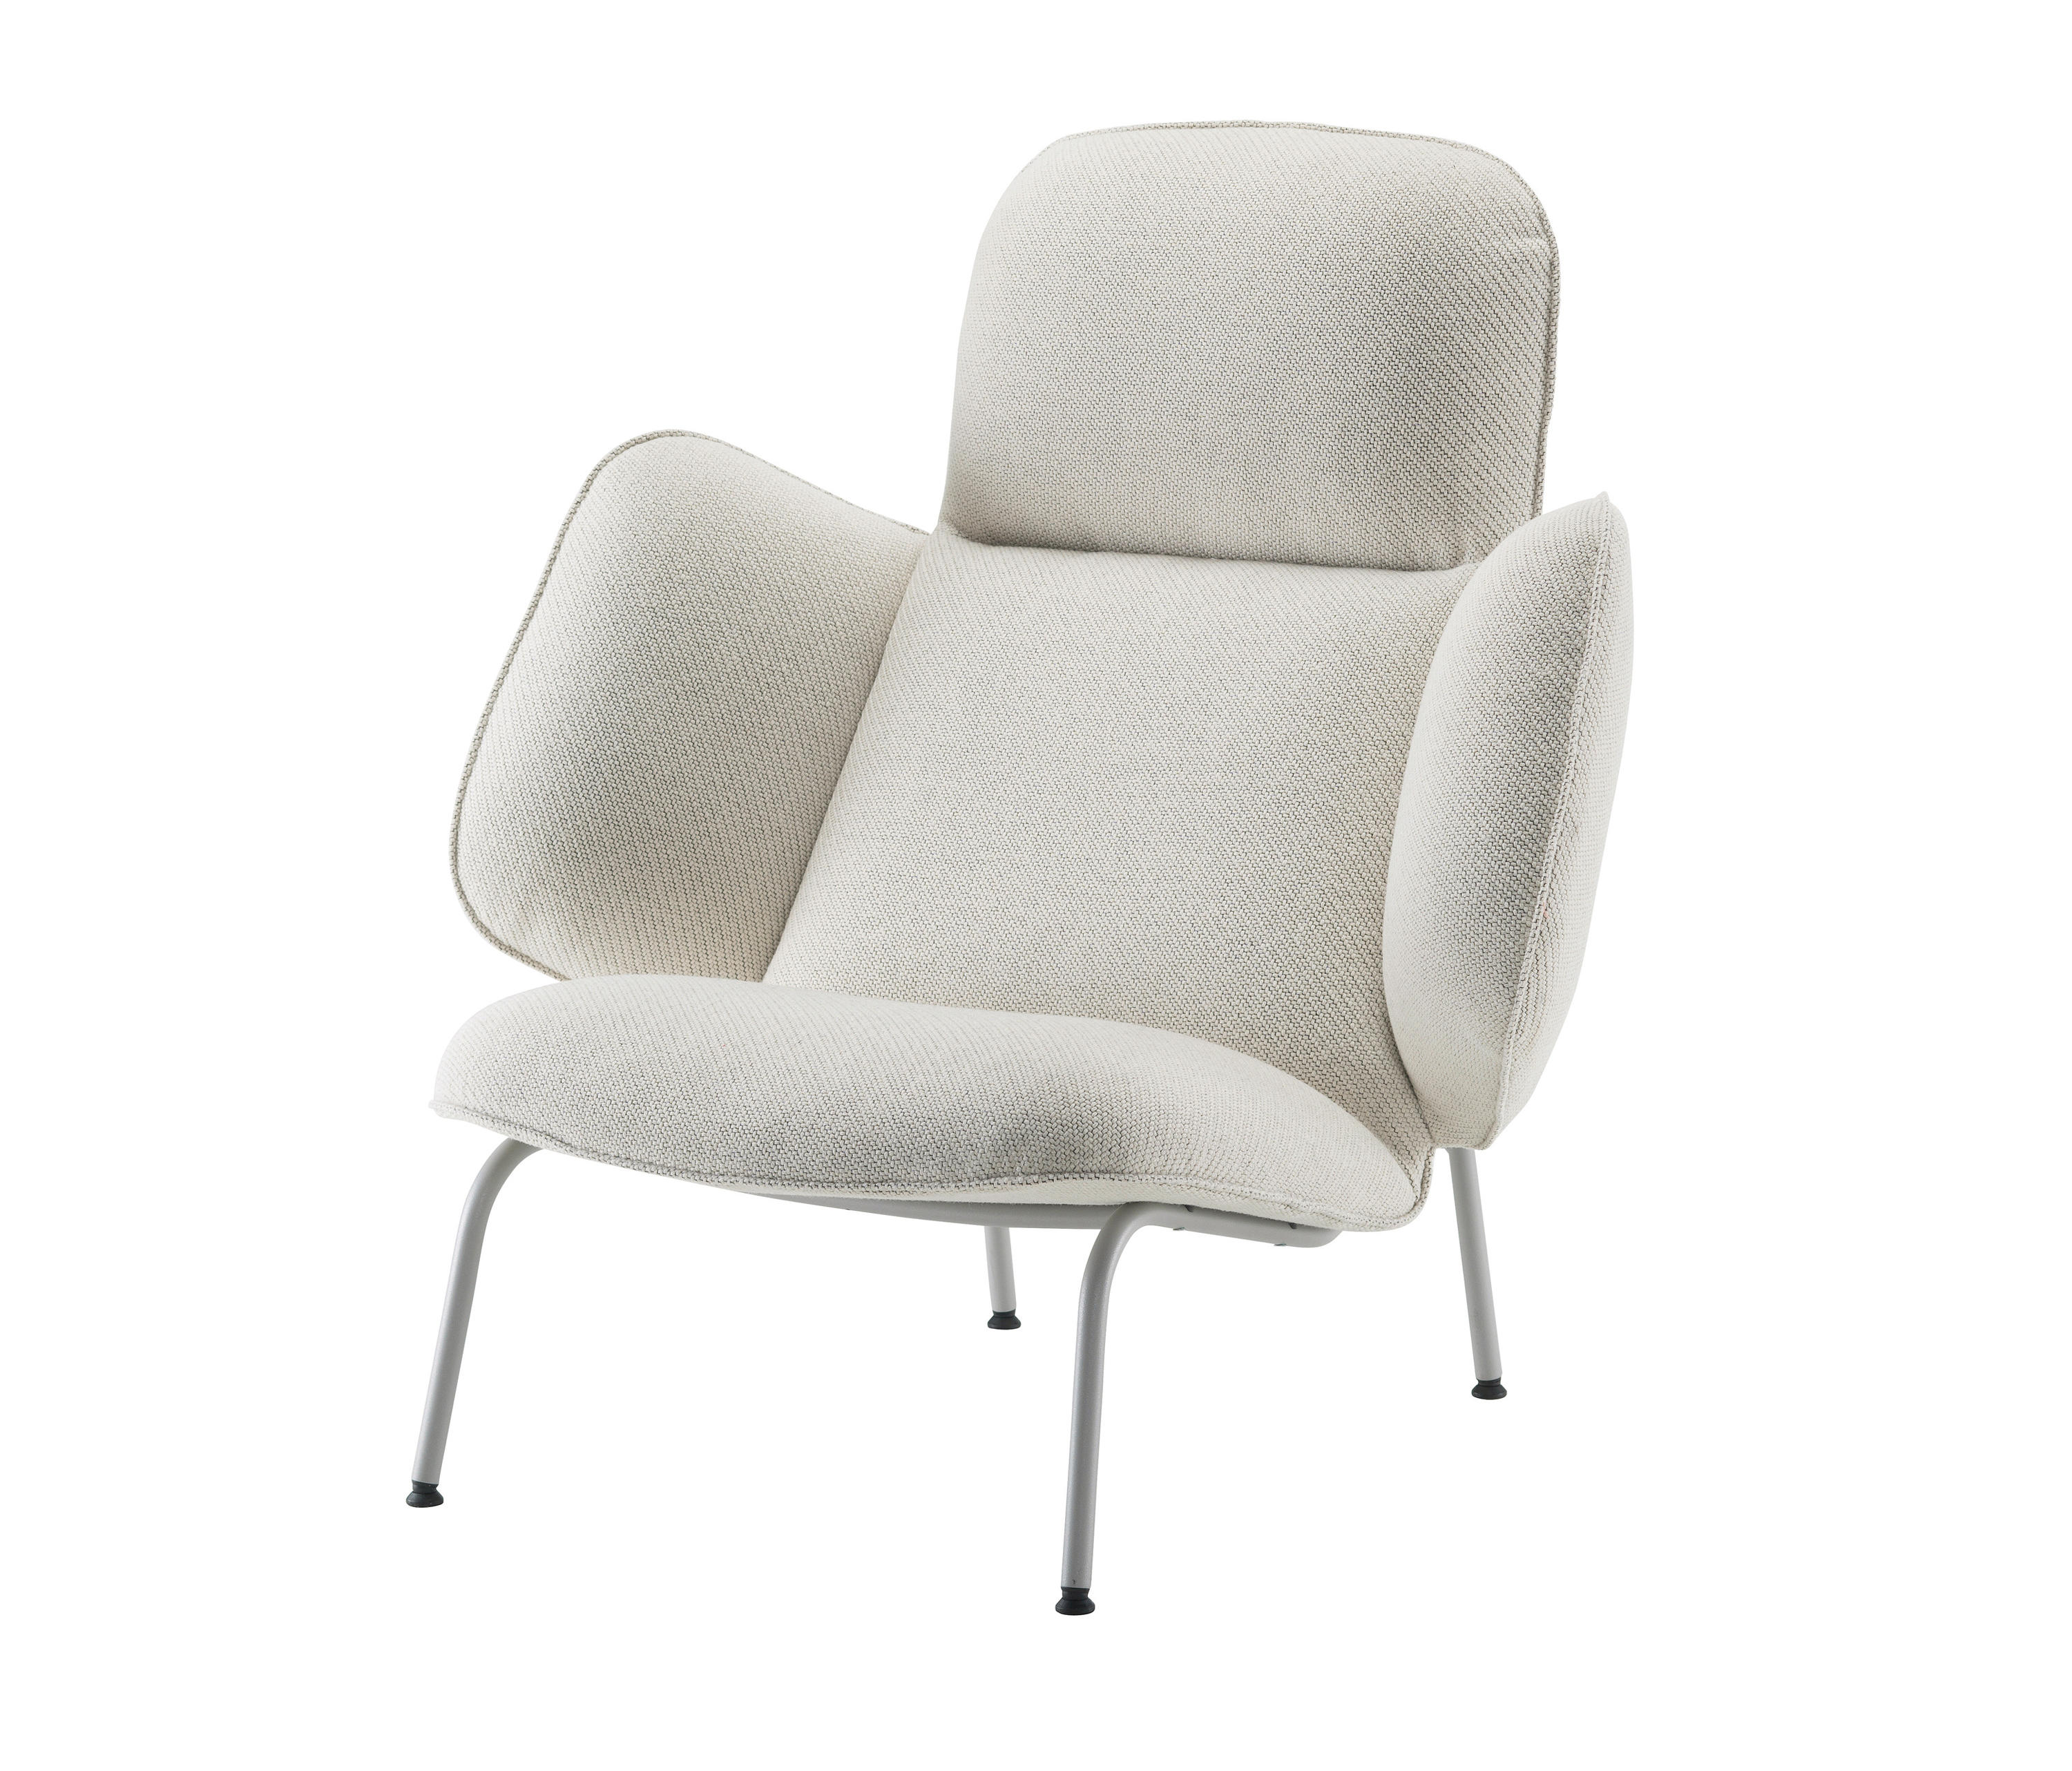 Big Chair Sessel Big Hug Armchair Sessel Von Isku Architonic